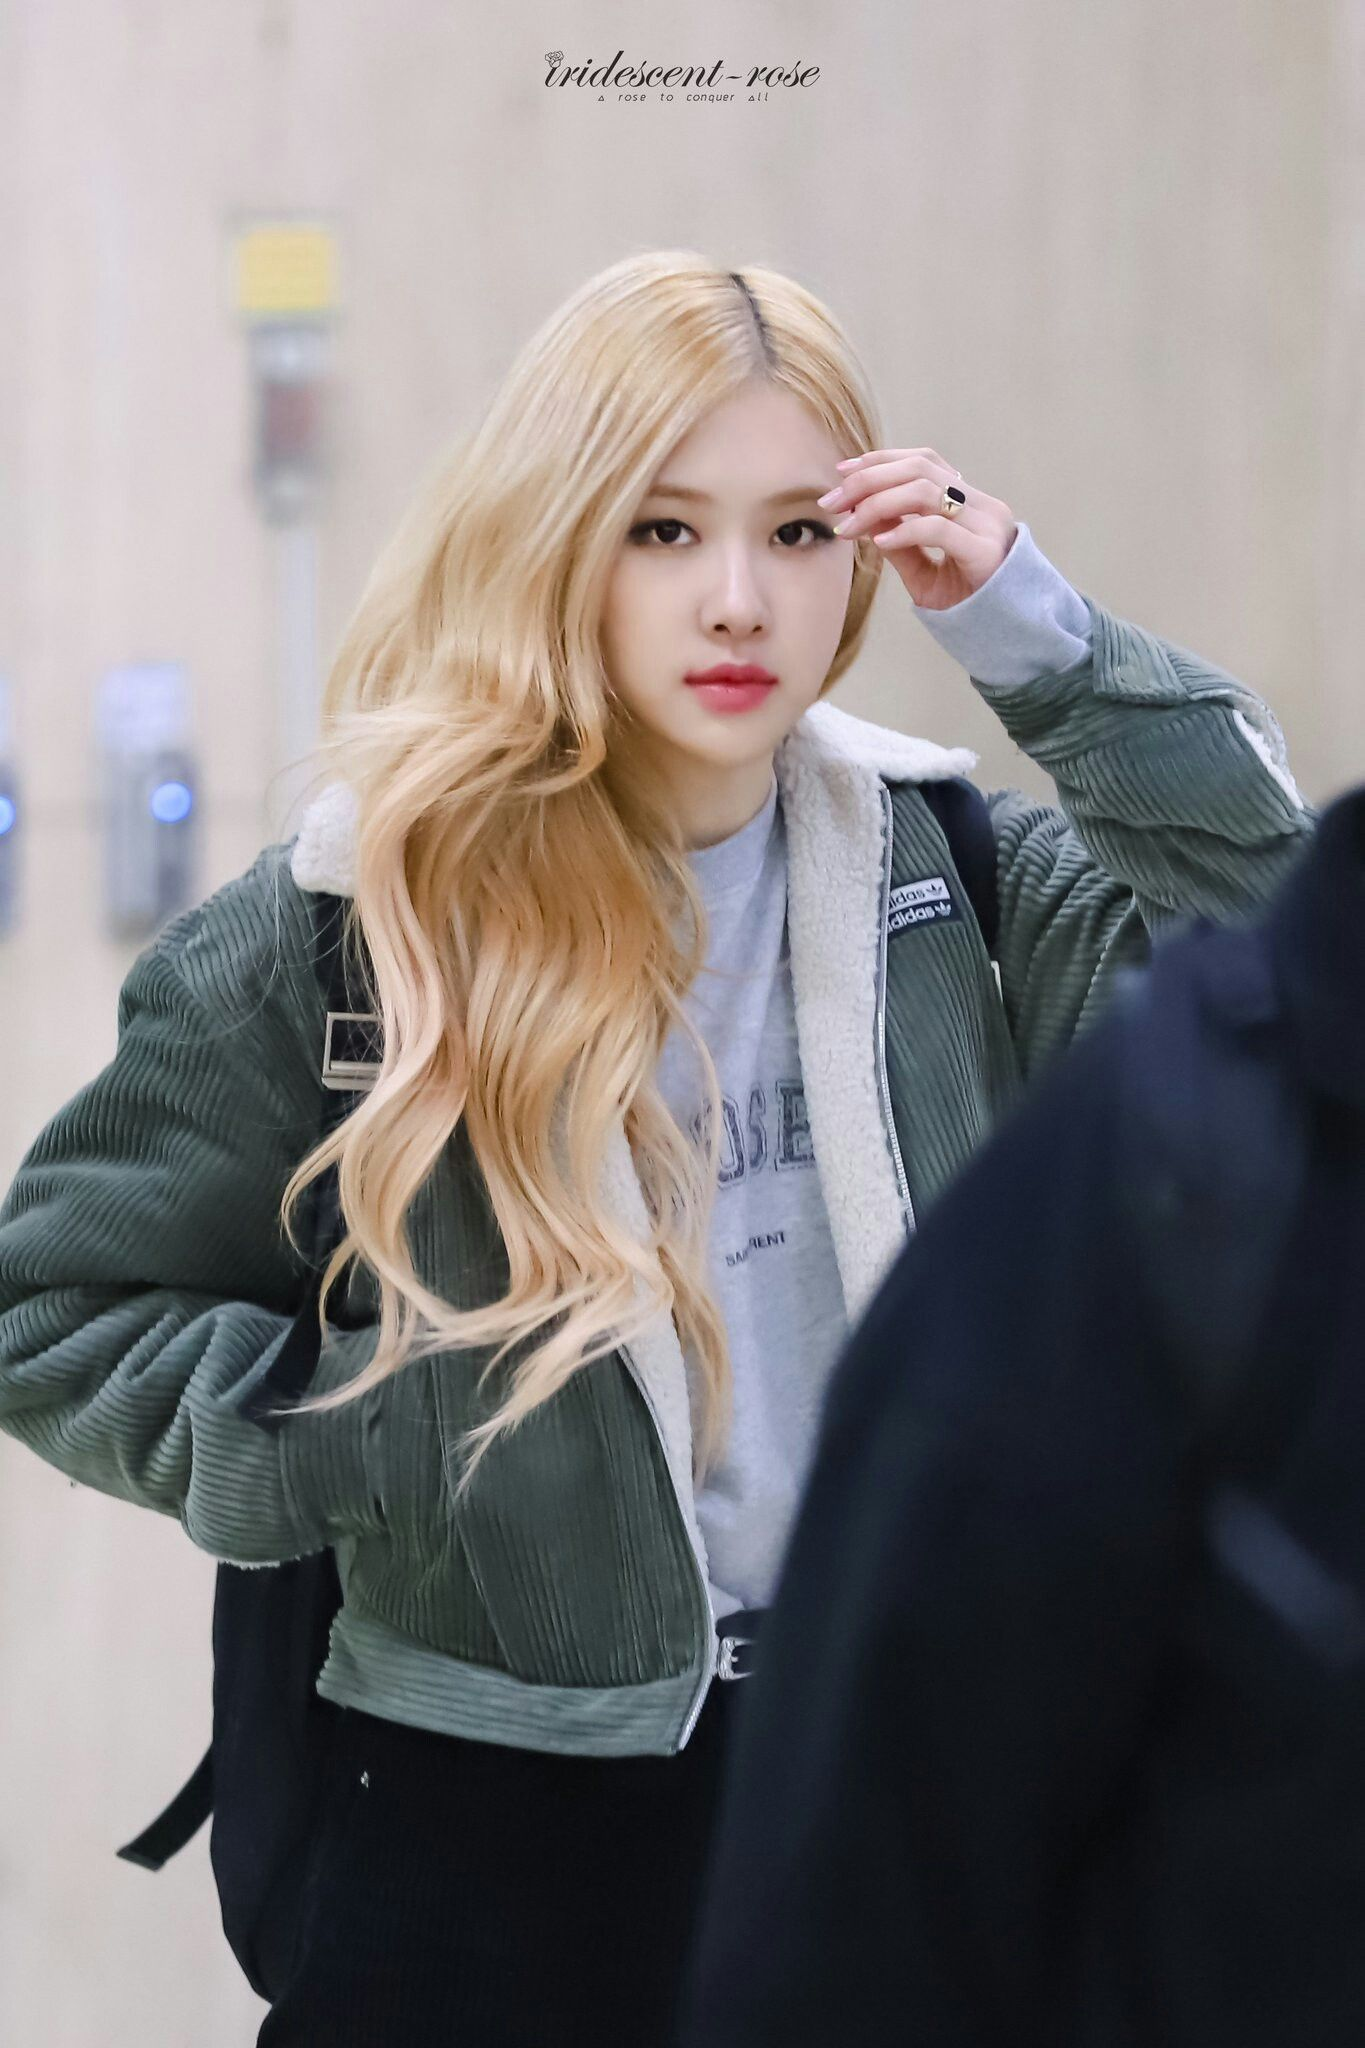 Pin By Pasta On Rose Blackpink Airport Style In 2020 Rose Blonde Blackpink Fashion Blackpink Rose